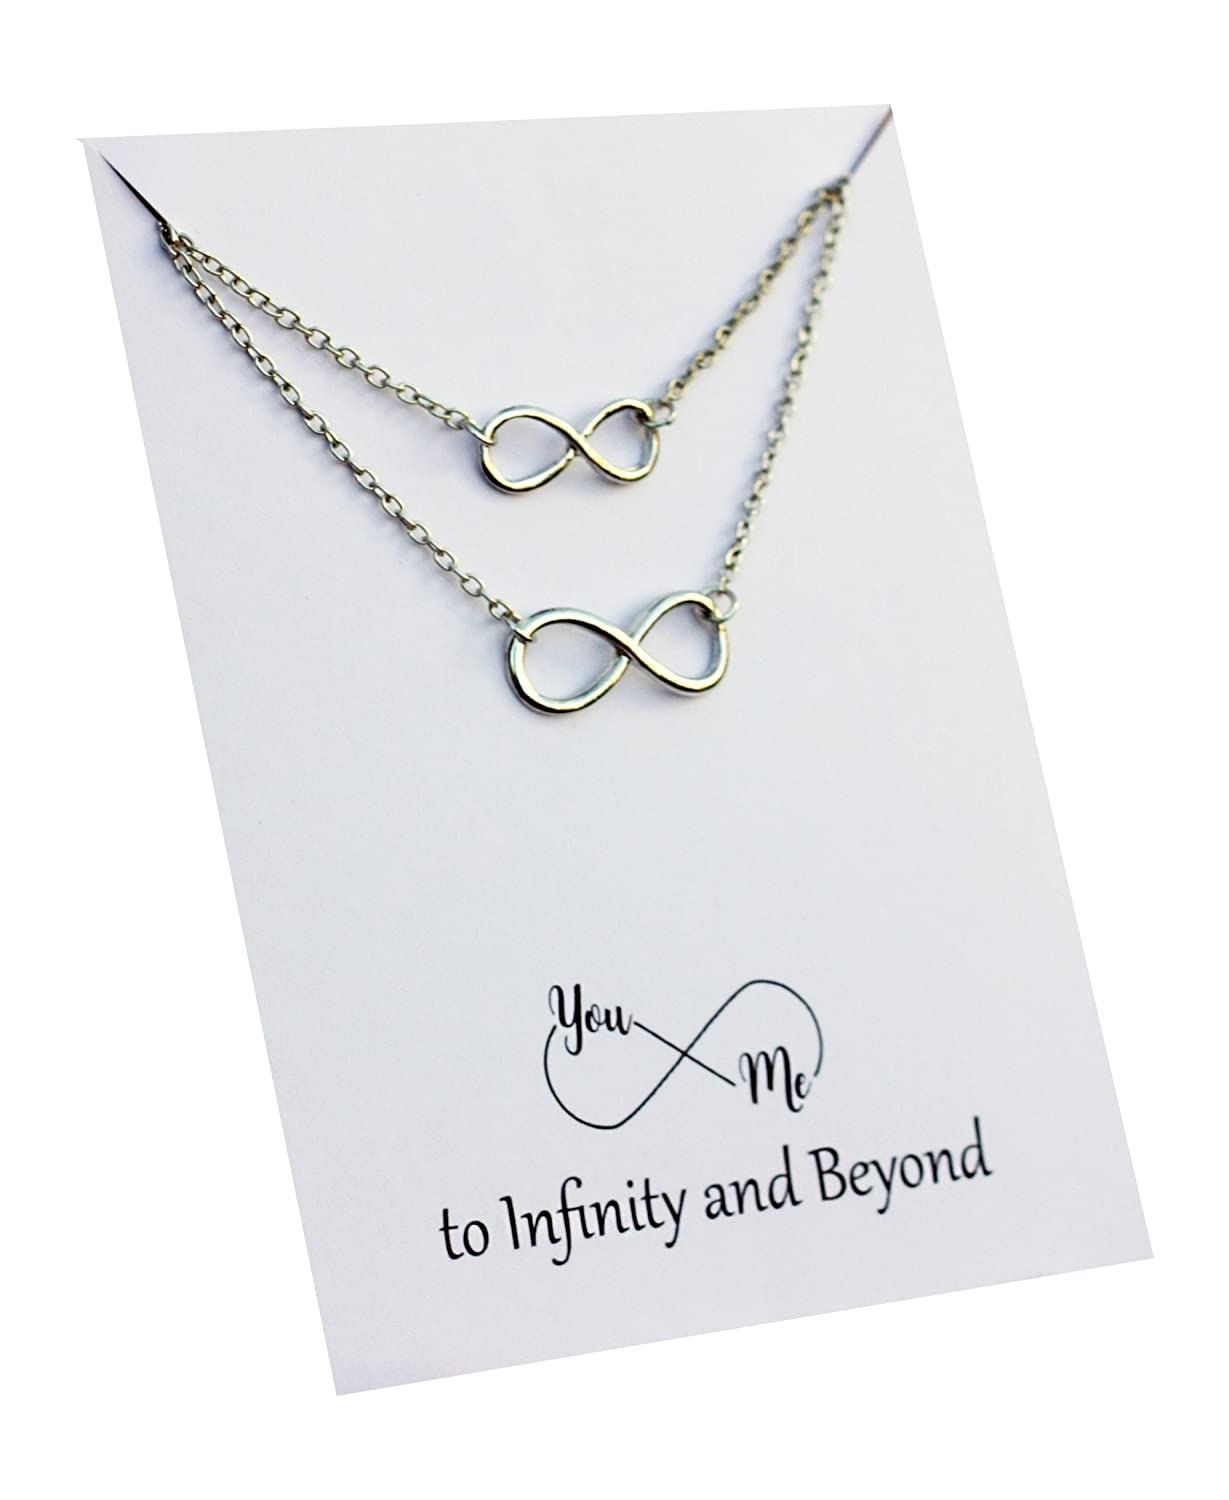 Friendship Necklace Infinity Beyond Pendant Gift card Family Friends Interlocking circles unbiological sister necklace